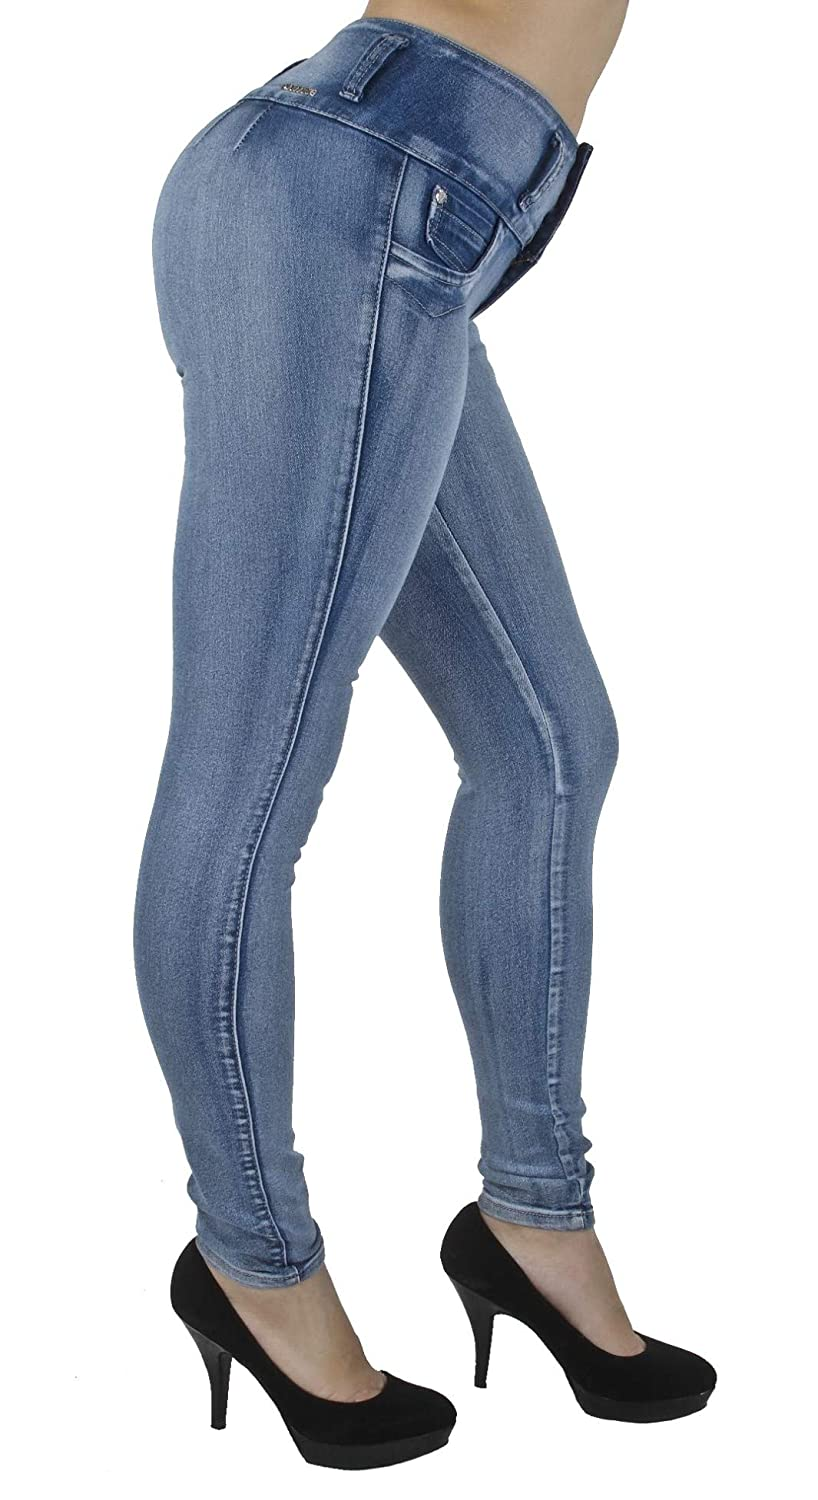 Fashion2Love Plus/Junior Size Colombian Design High Waist Butt Lift Levanta Cola Skinny Jeans G208